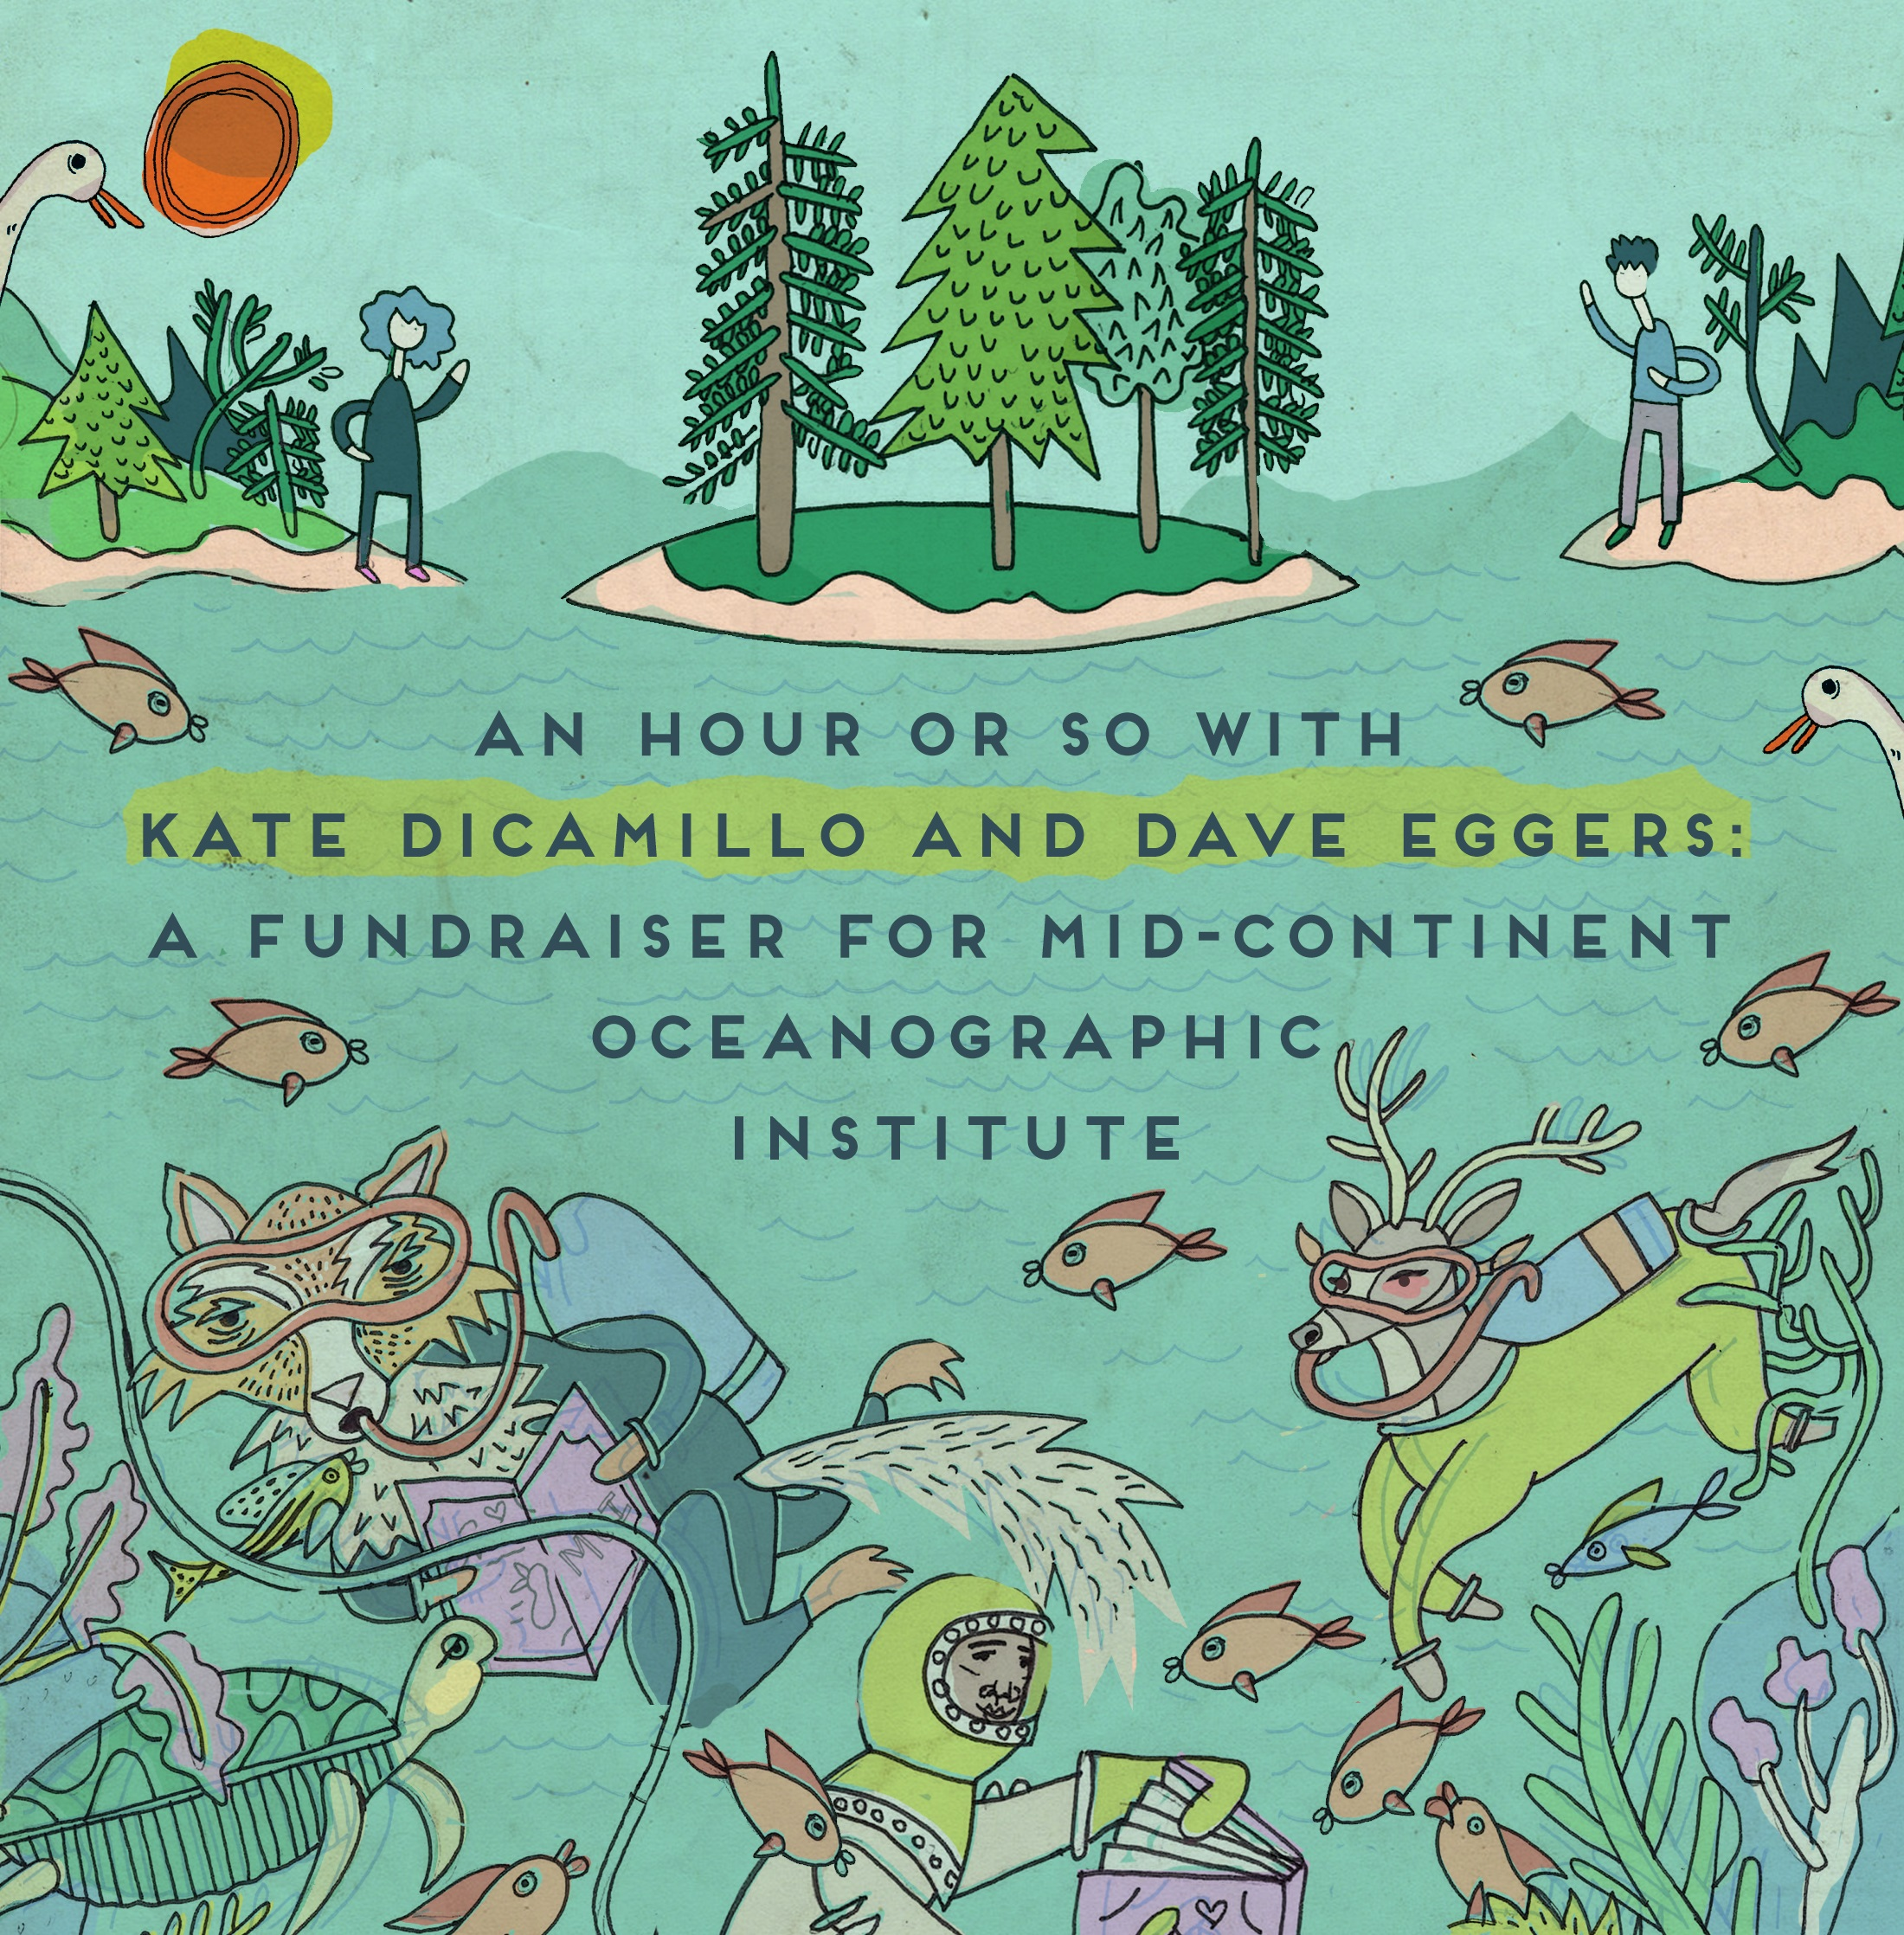 An Hour or So With Kate DiCamillo and Dave Eggers